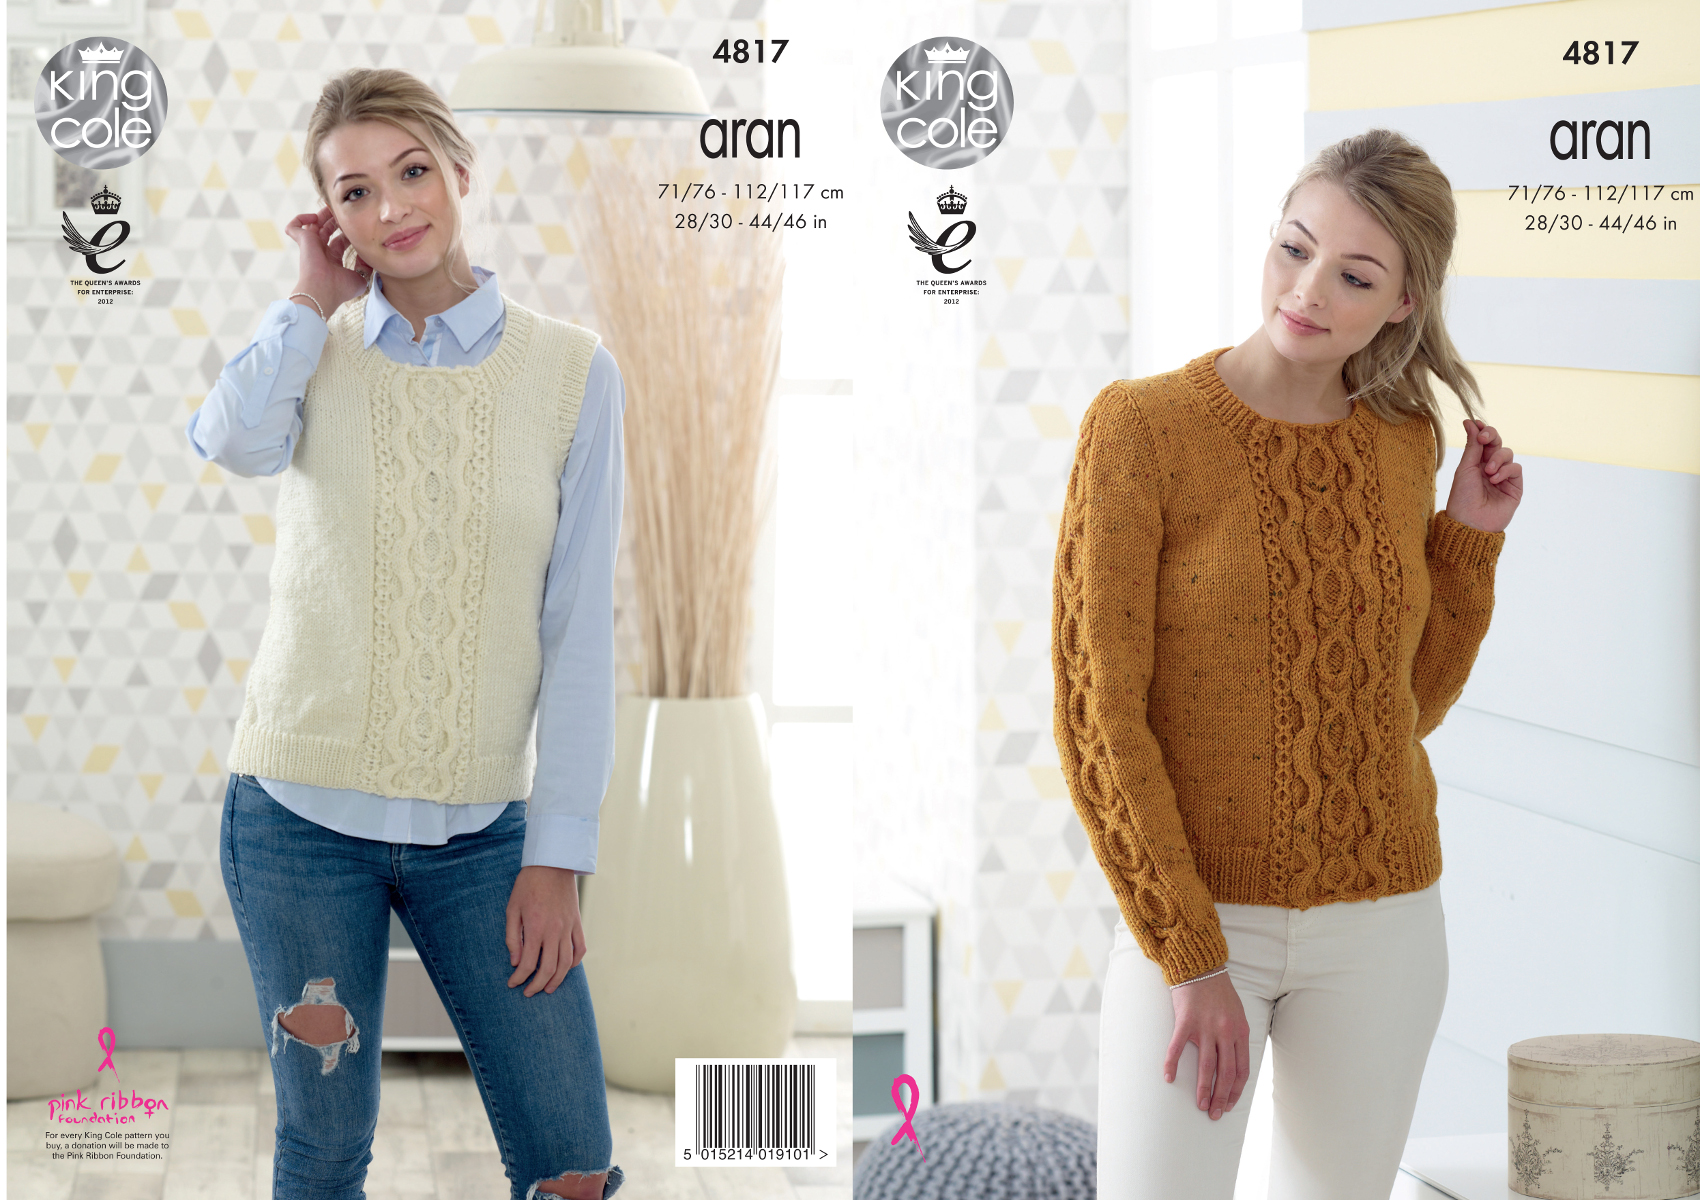 King Cole Ladies Aran Knitting Pattern Womens Cable Knit Sweater ...